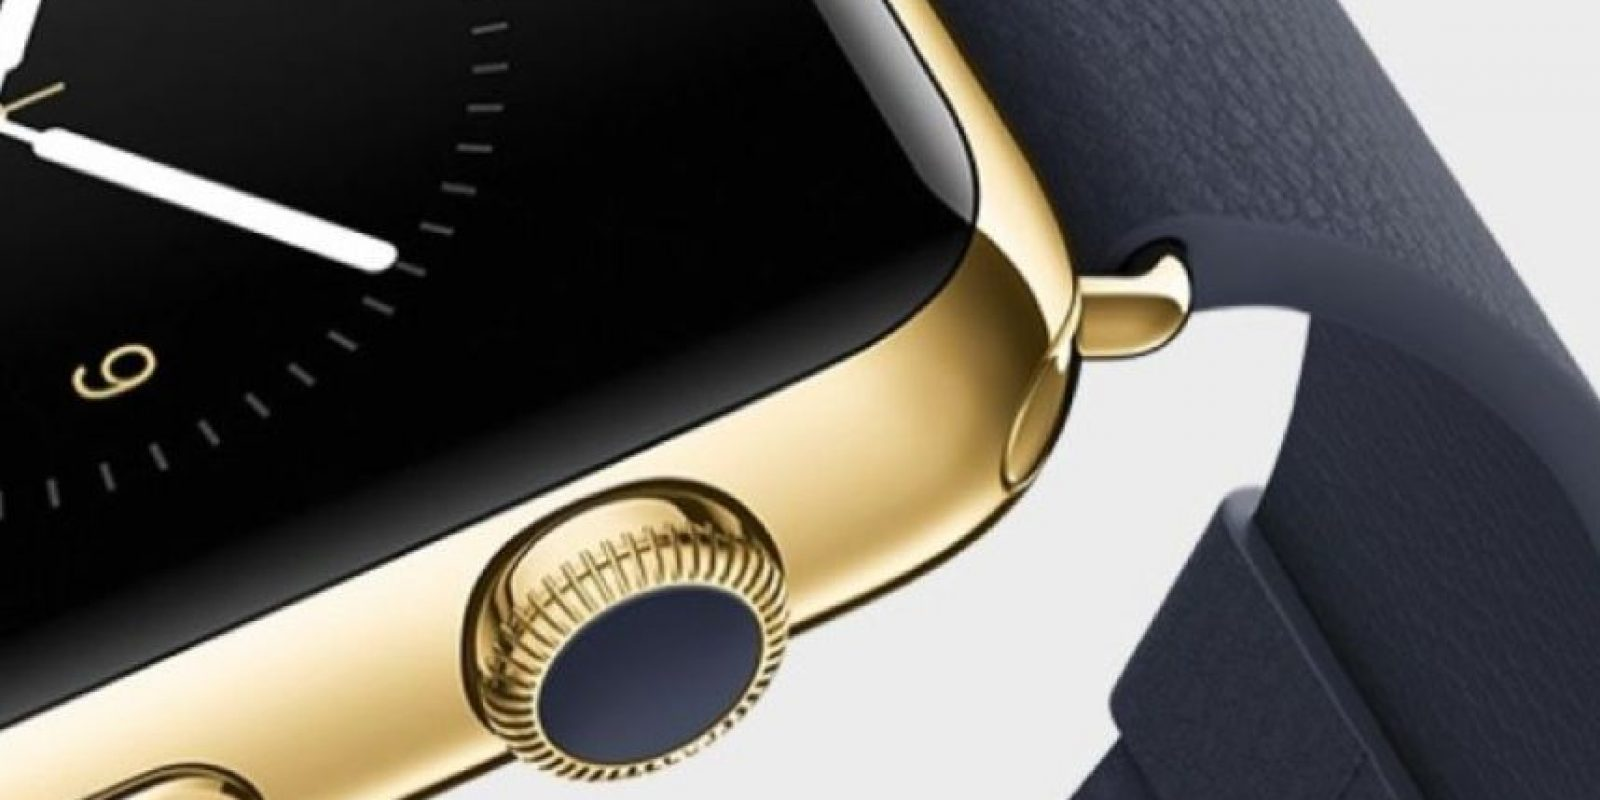 Un Apple Watch de oro puede costar hasta 17 mil dólares. Foto: Apple